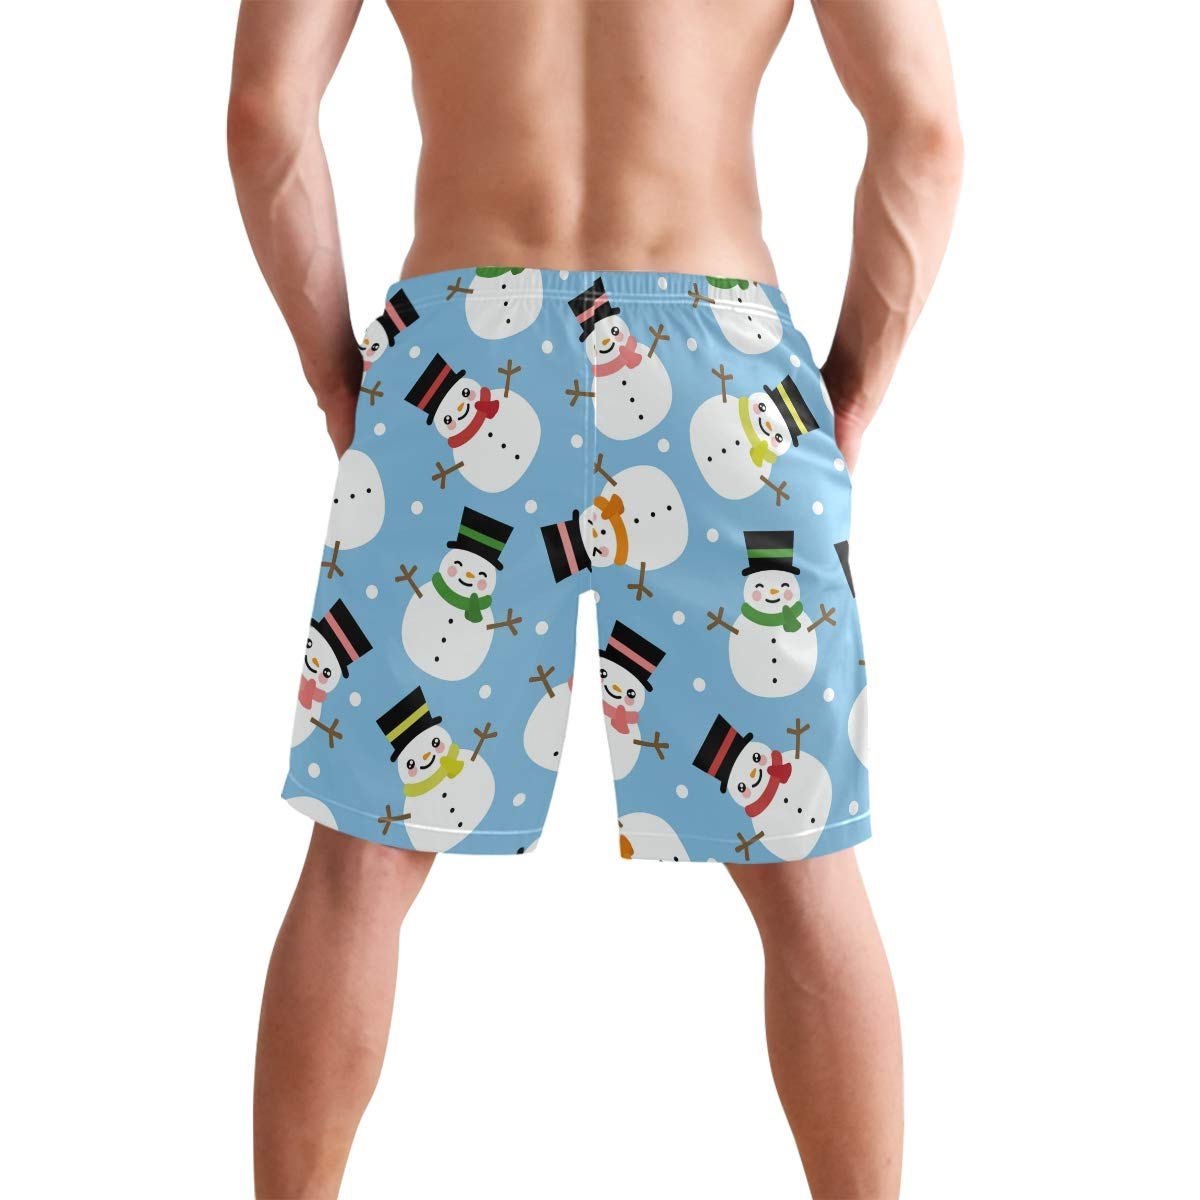 JERECY Mens Swim Trunks Winter Snowman Pattern Quick Dry Board Shorts with Drawstring and Pockets